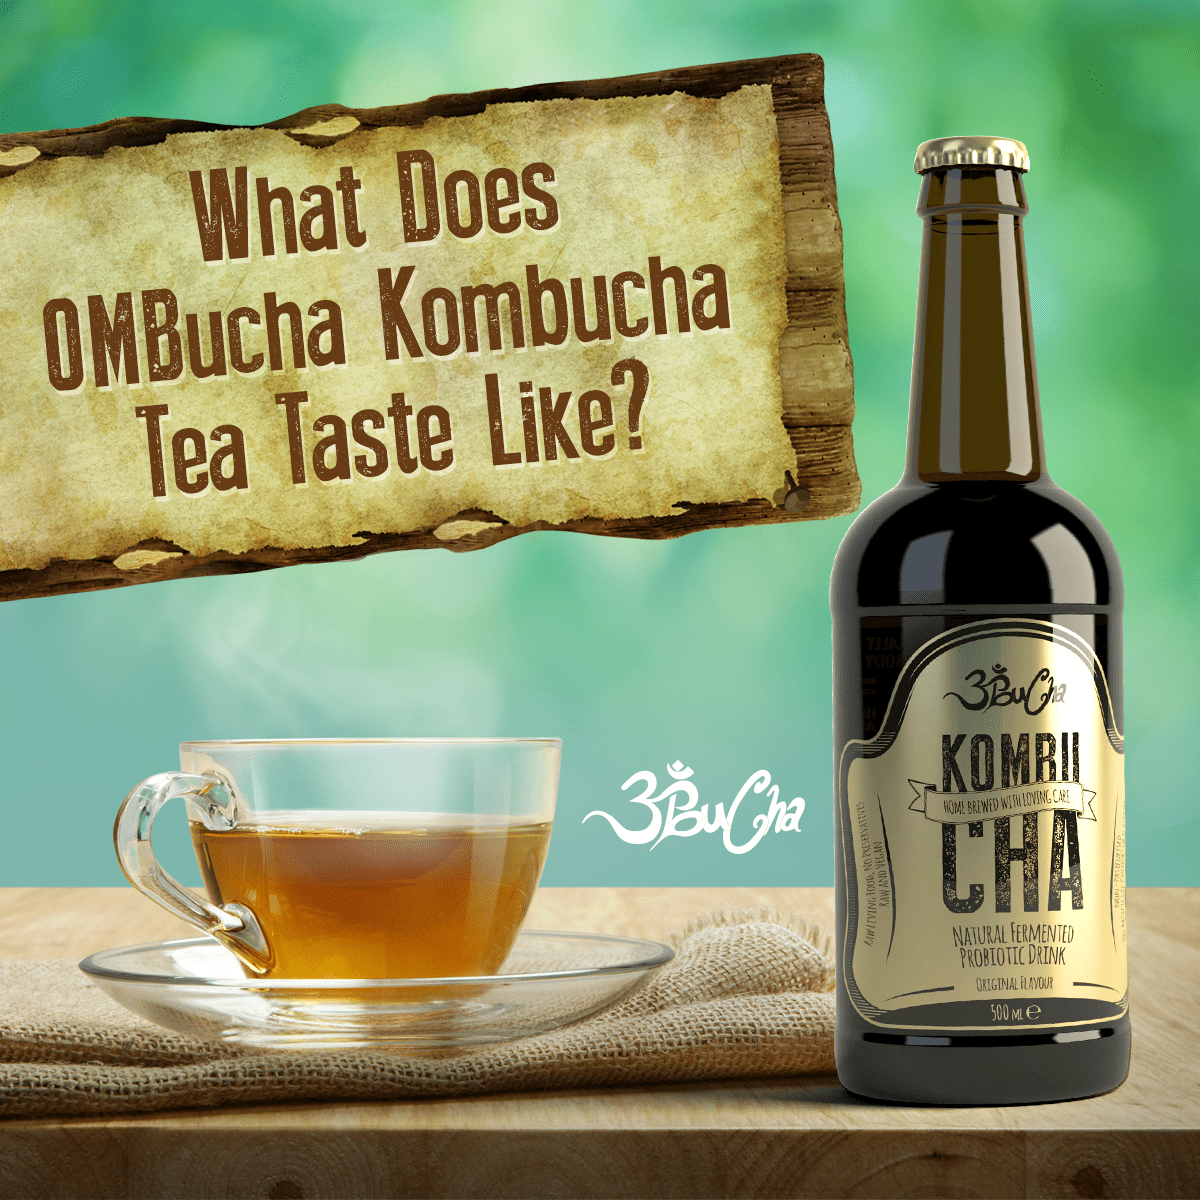 what does kombucha tea taste like